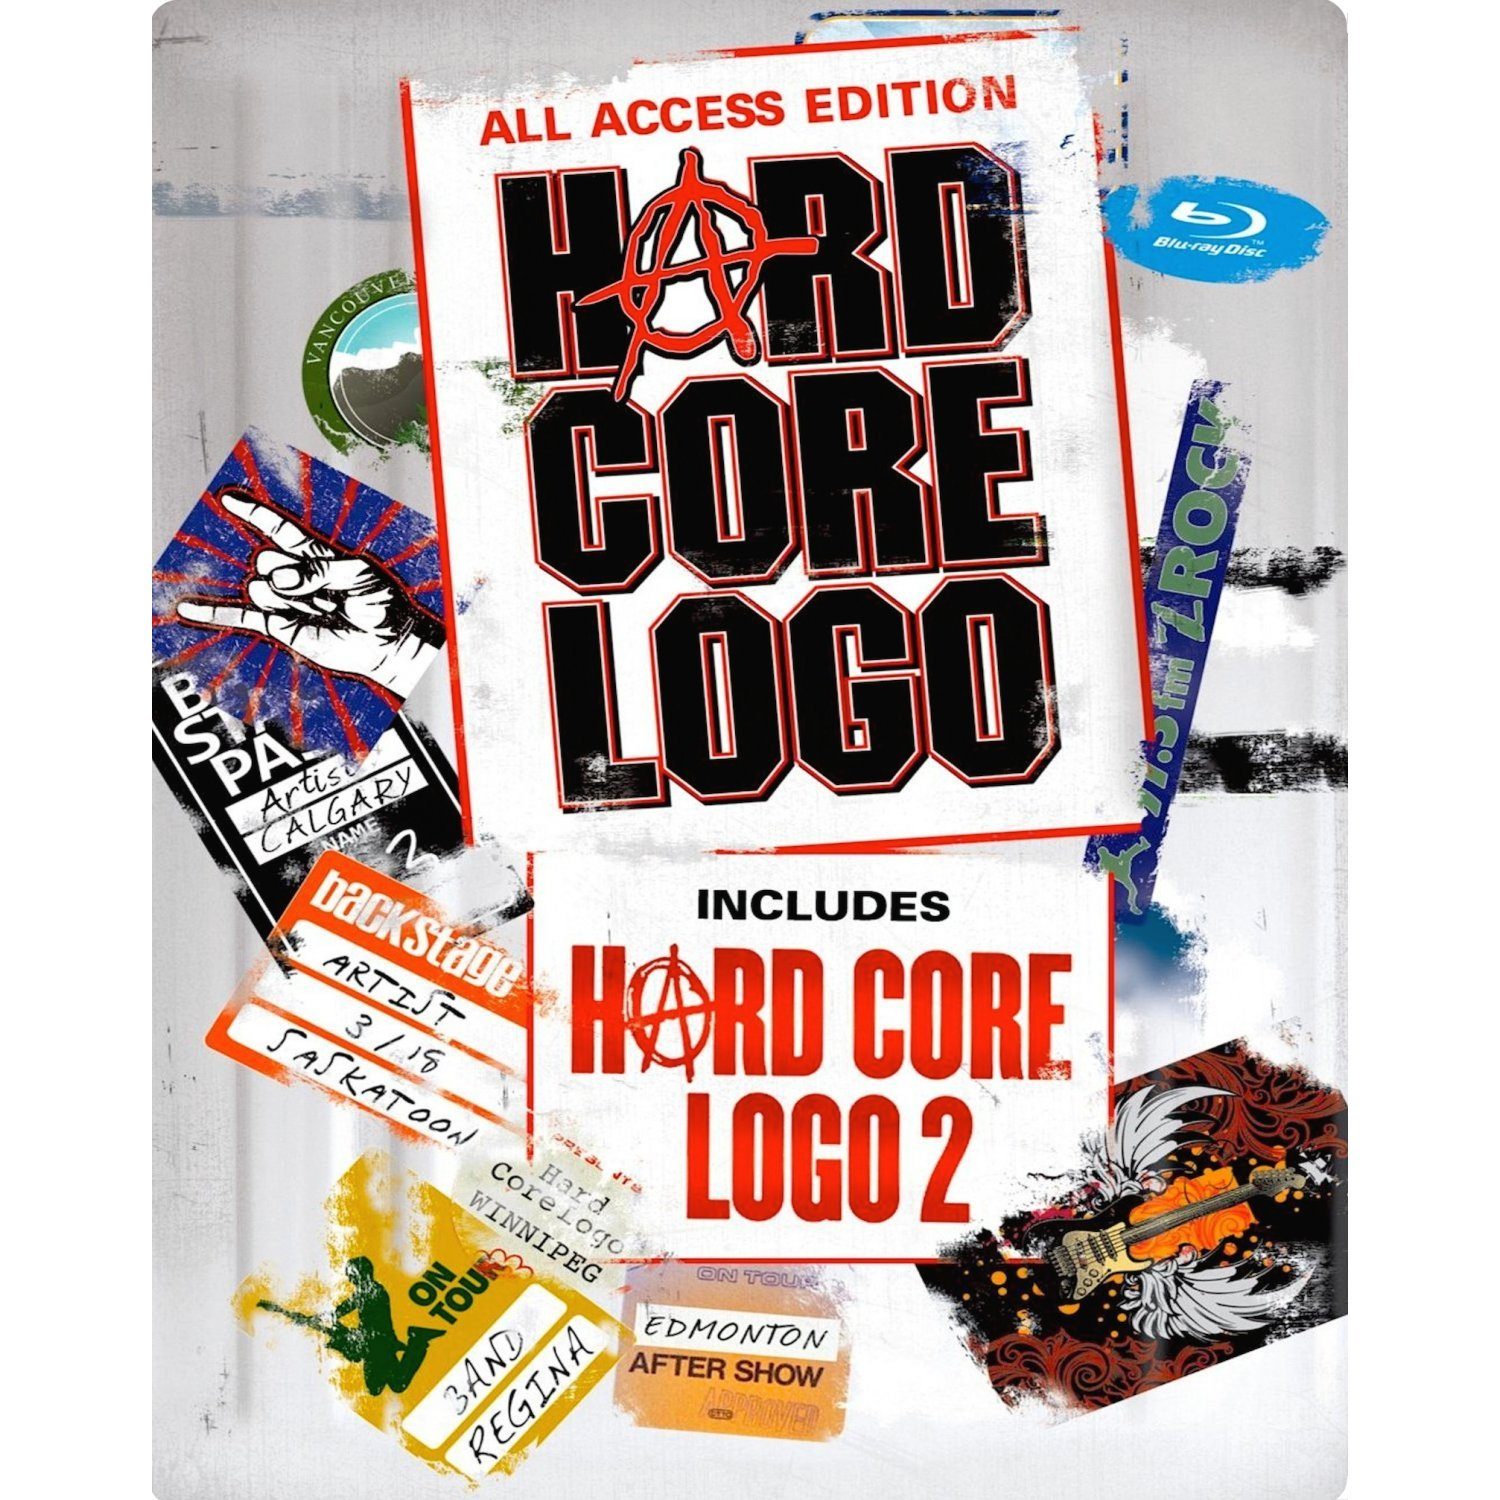 an analysis of hard core logo by bruce mcdonalds Hard core logo 2 is a 2010 canadian drama film written and directed by bruce mcdonald it is a sequel to mcdonald's 1996 film, hard core logo hard core logo 2 assumes the same filmmaking style as mcdonald's latter-mentioned cult classic hard core logo.